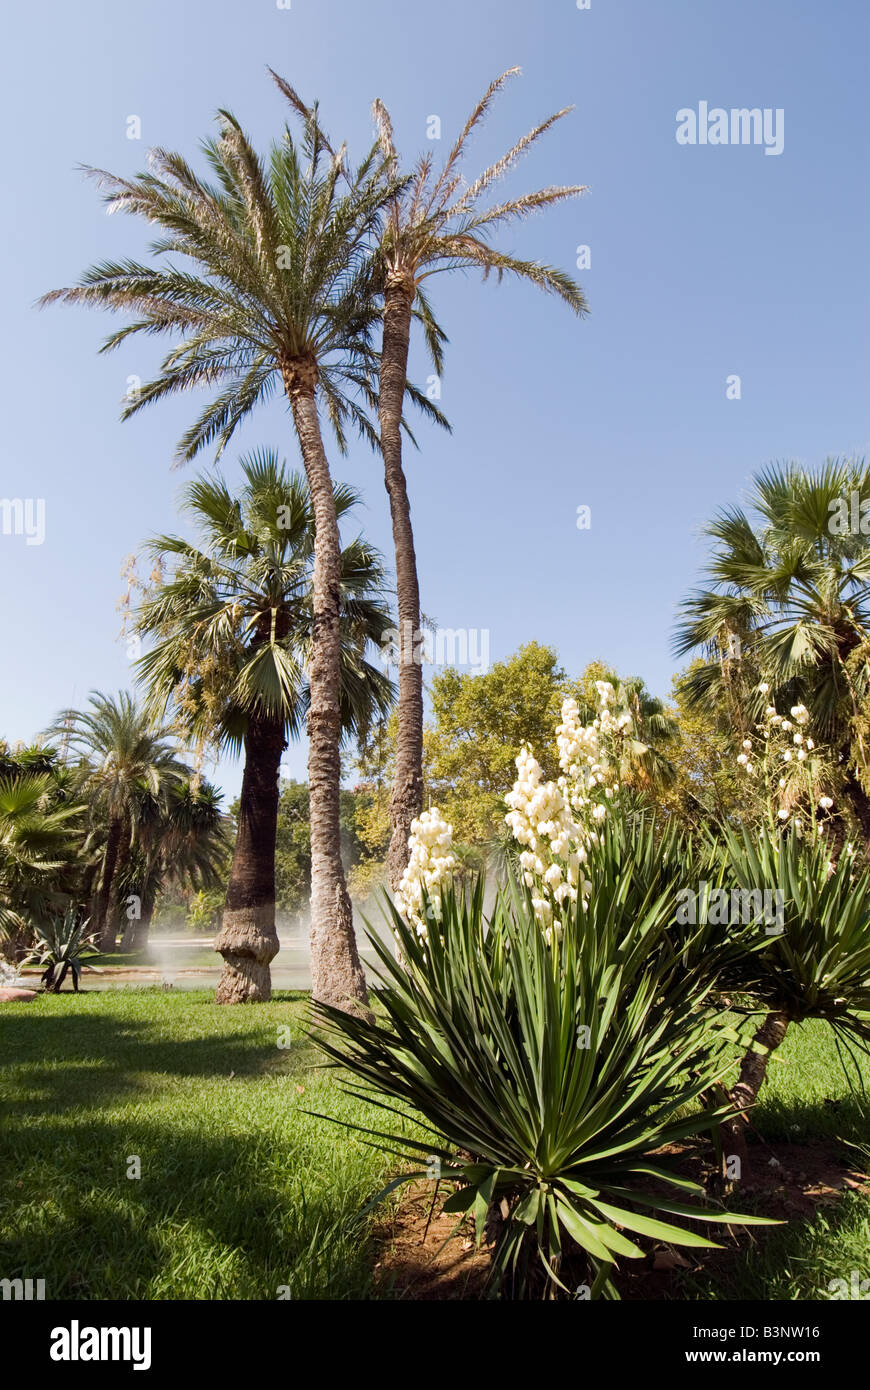 Palm trees in Jardin del Real Viveros in Valencia Spain - Stock Image